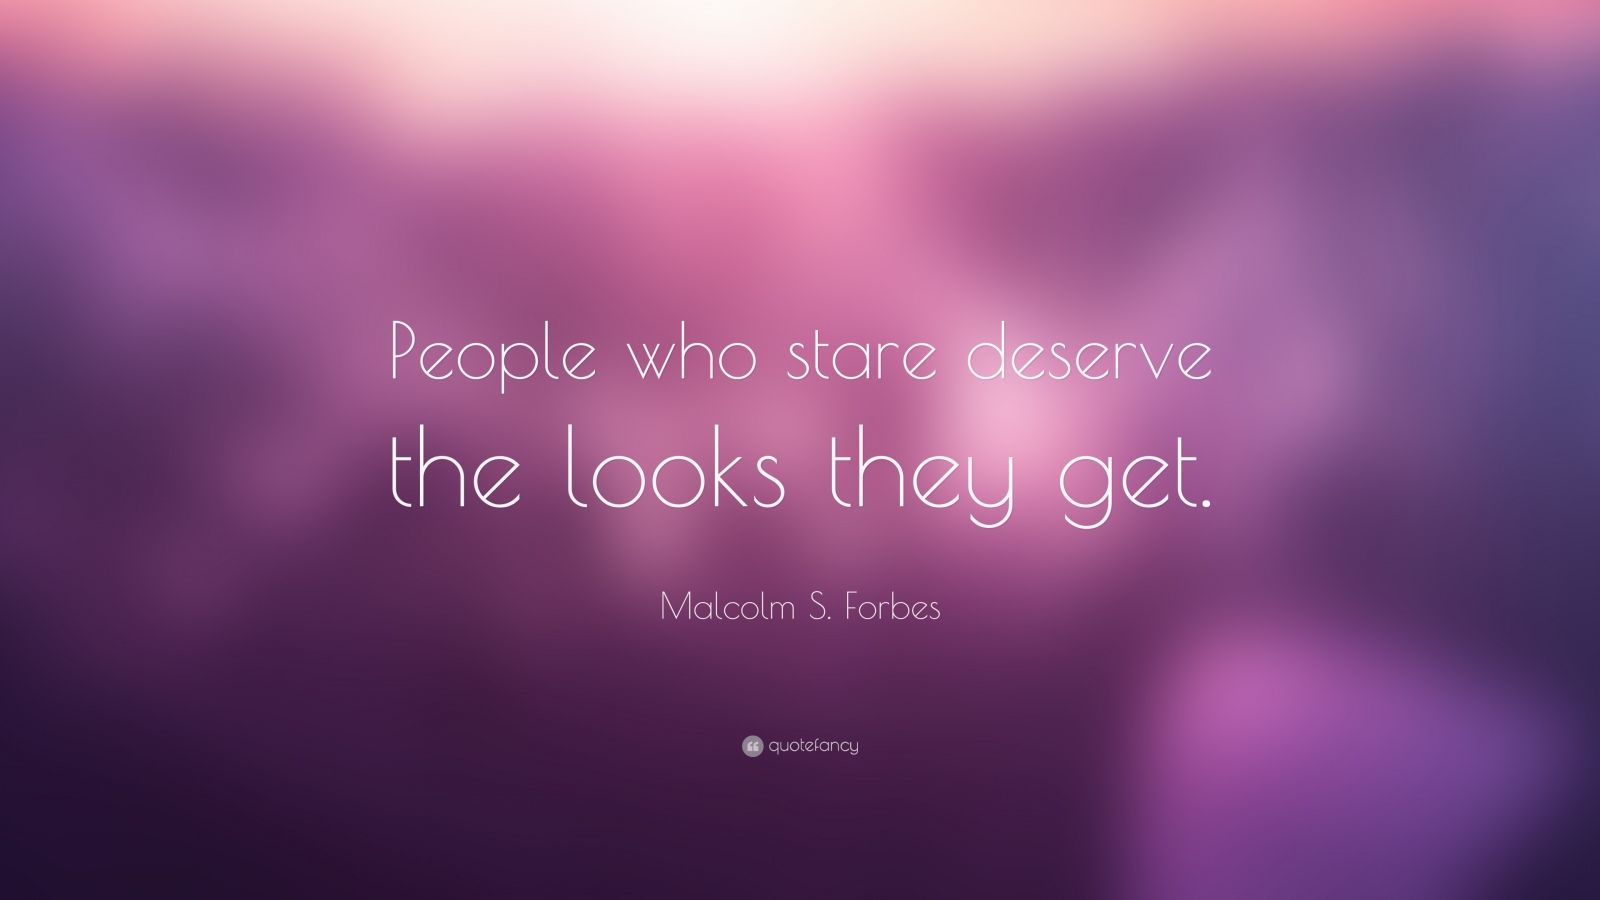 """Malcolm S. Forbes Quote: """"People who stare deserve the looks they get."""""""